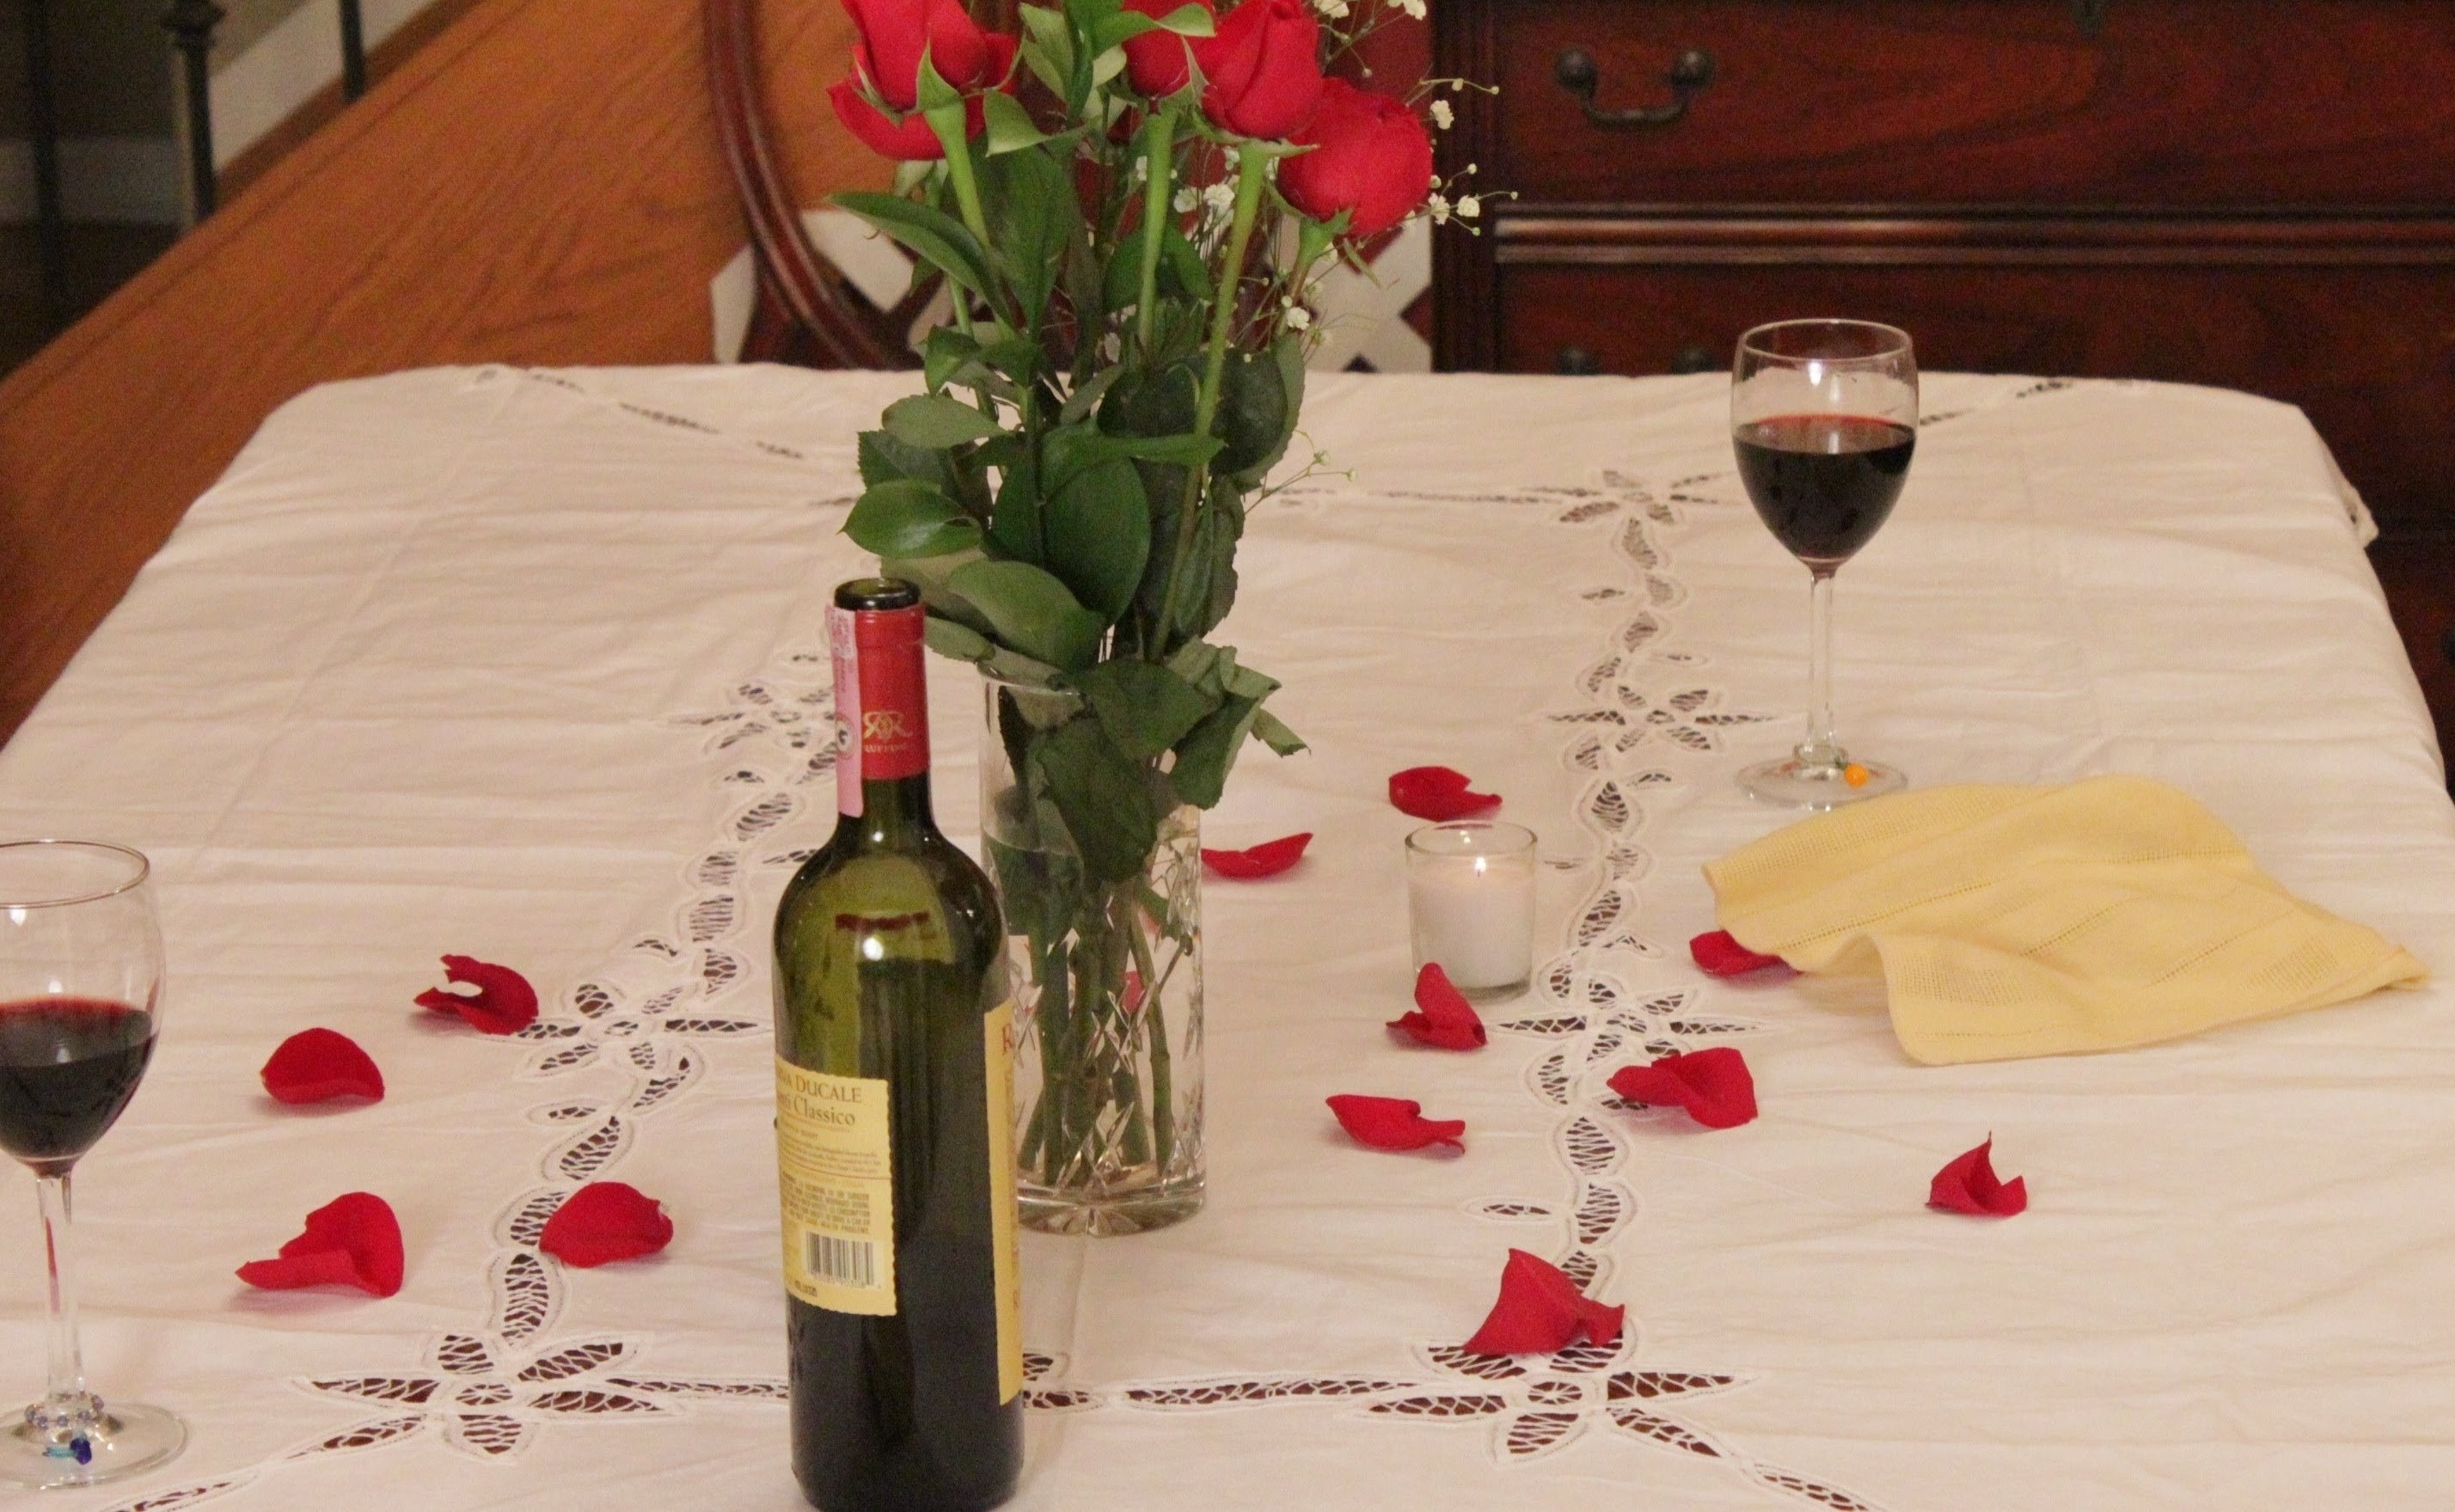 10 Wonderful Romantic Dinner For Two Ideas valentines day romantic dinner for two ribeye steaks with sherry 1 2020